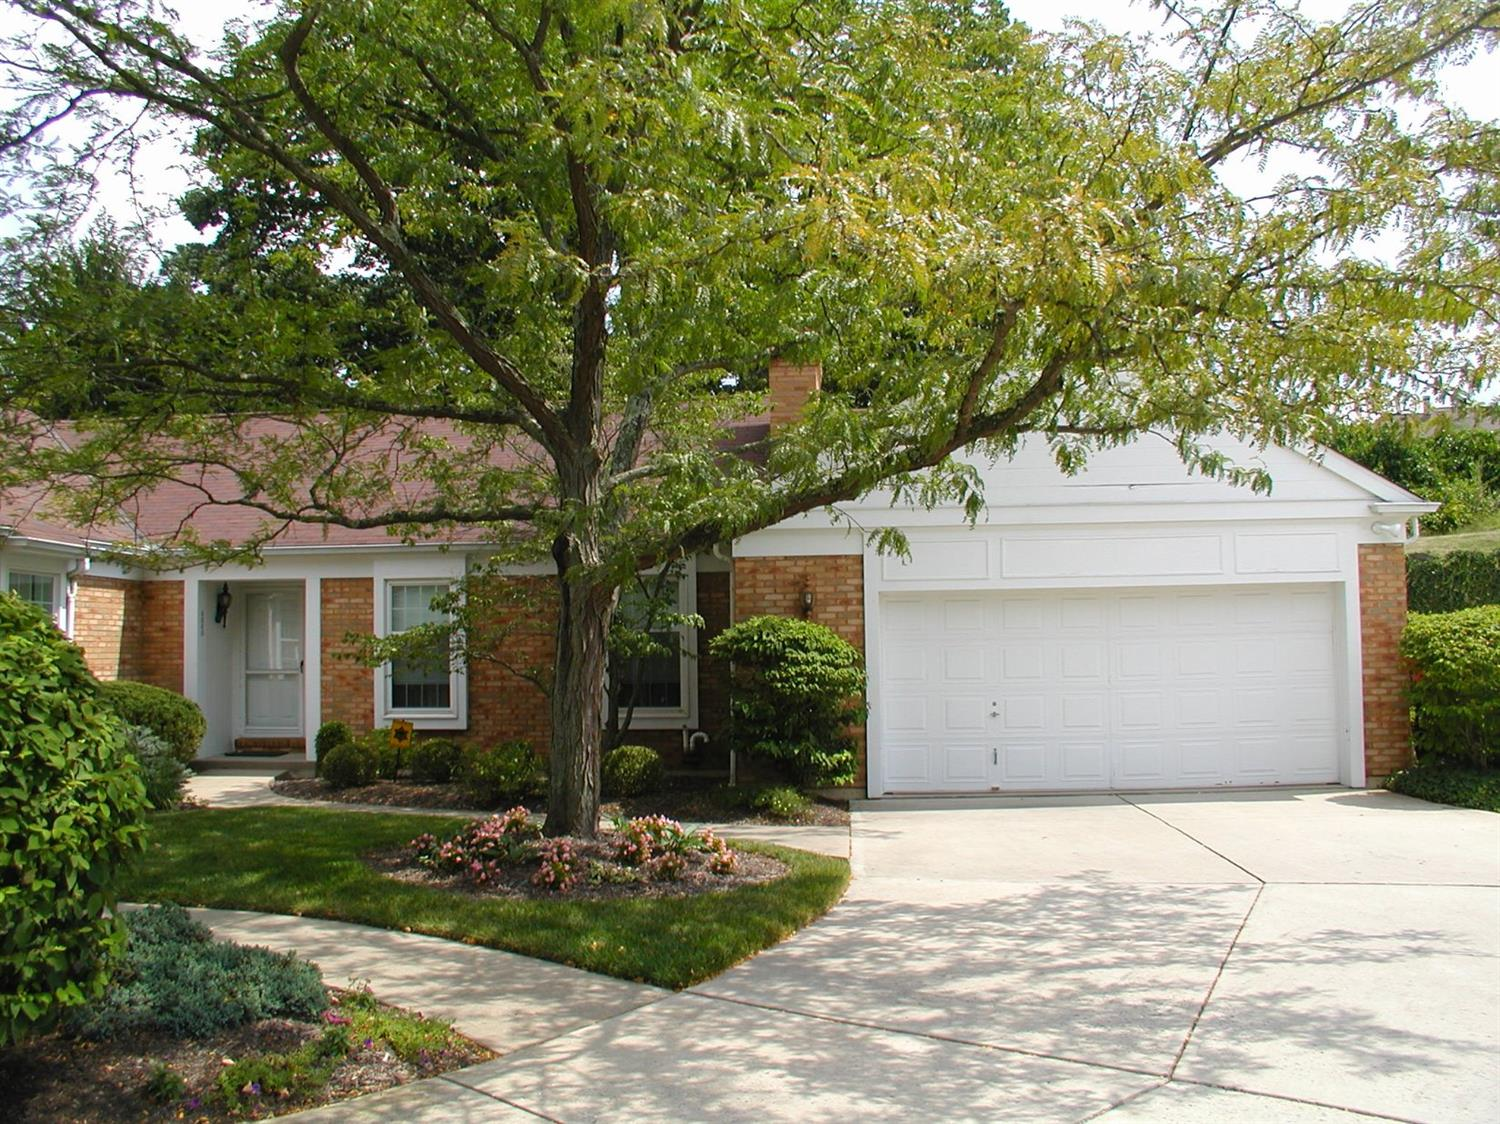 3080 Country Woods Ln Bridgetown, OH